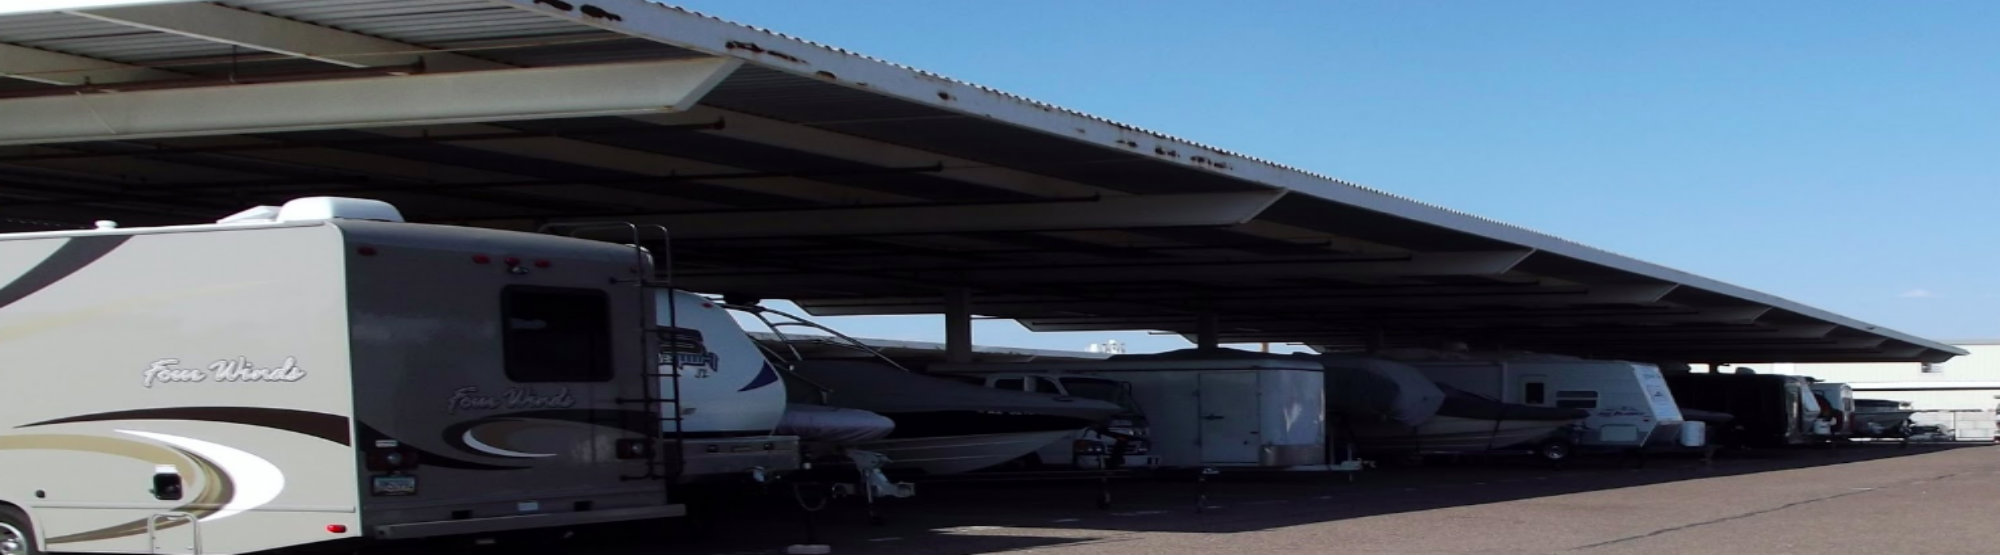 RV & Vehicle Storage in Gilbert, AZ